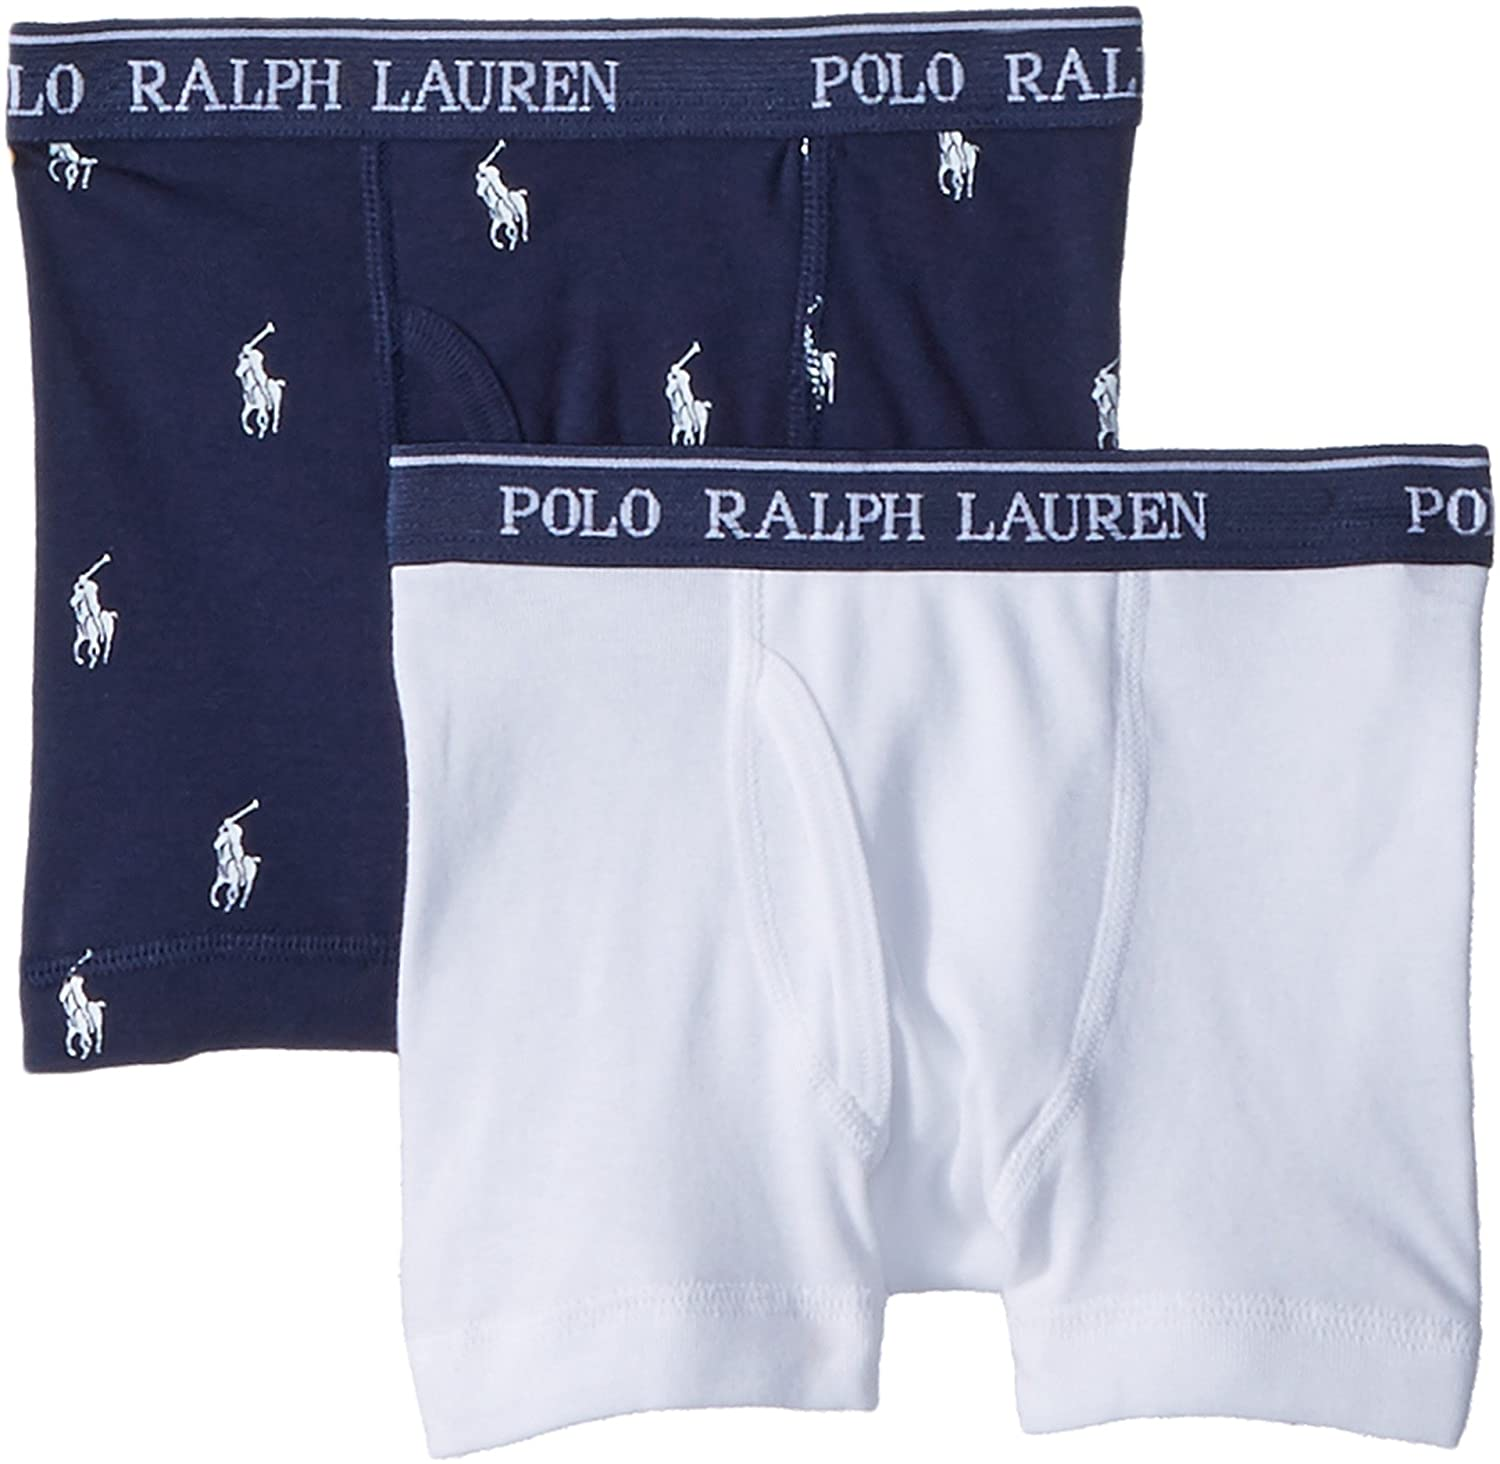 Polo Ralph Lauren Boy's Boxer Briefs 2 Pack Polo Ralph Lauren Kids